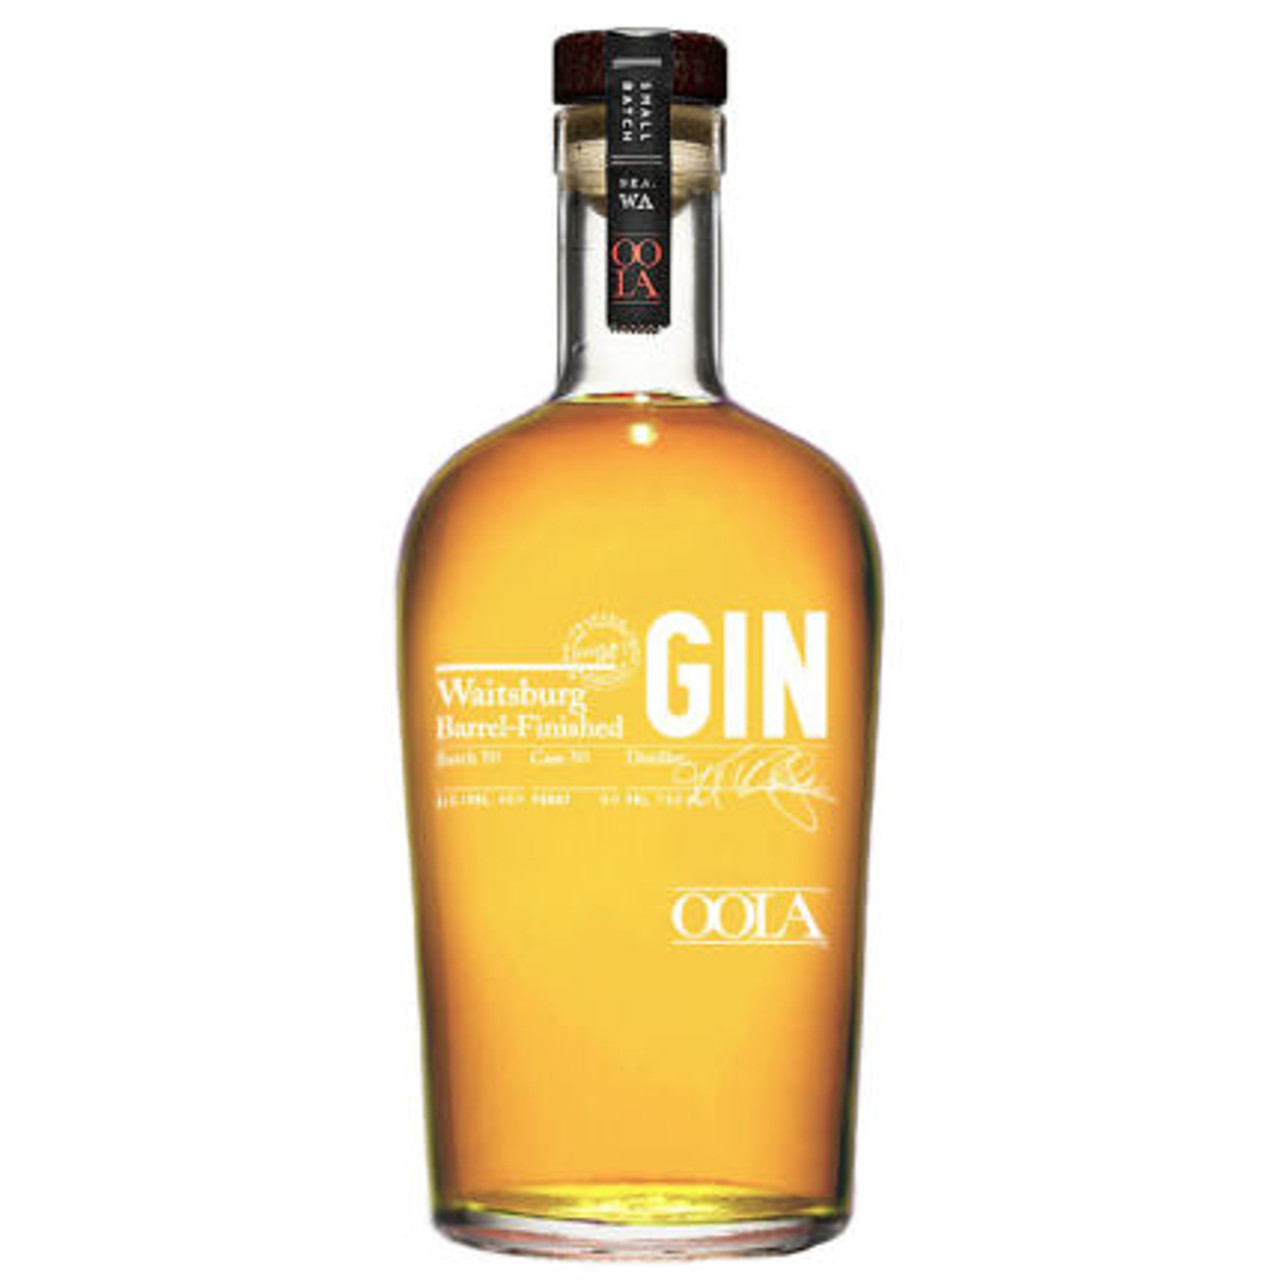 OOLA Waitsburg Barrel Finished Gin 750ml